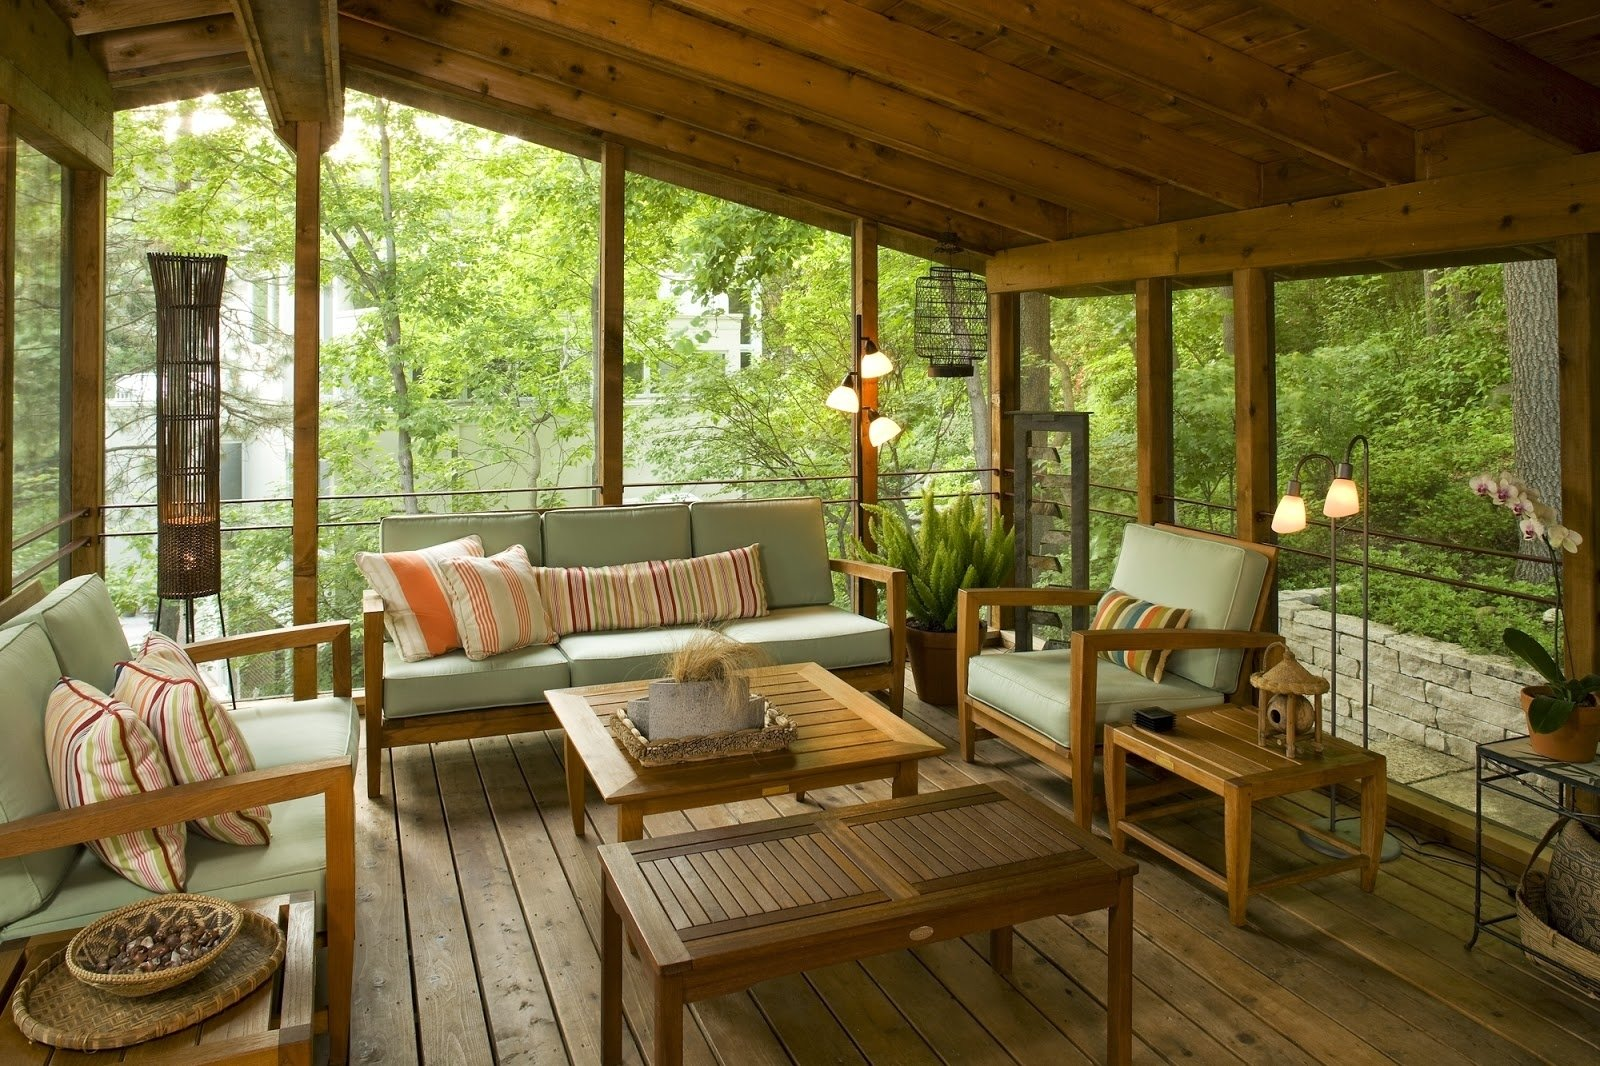 10 Most Recommended Screened In Porch Design Ideas back porch ideas for ranch homes decorating ffcddcfa surripui 2021